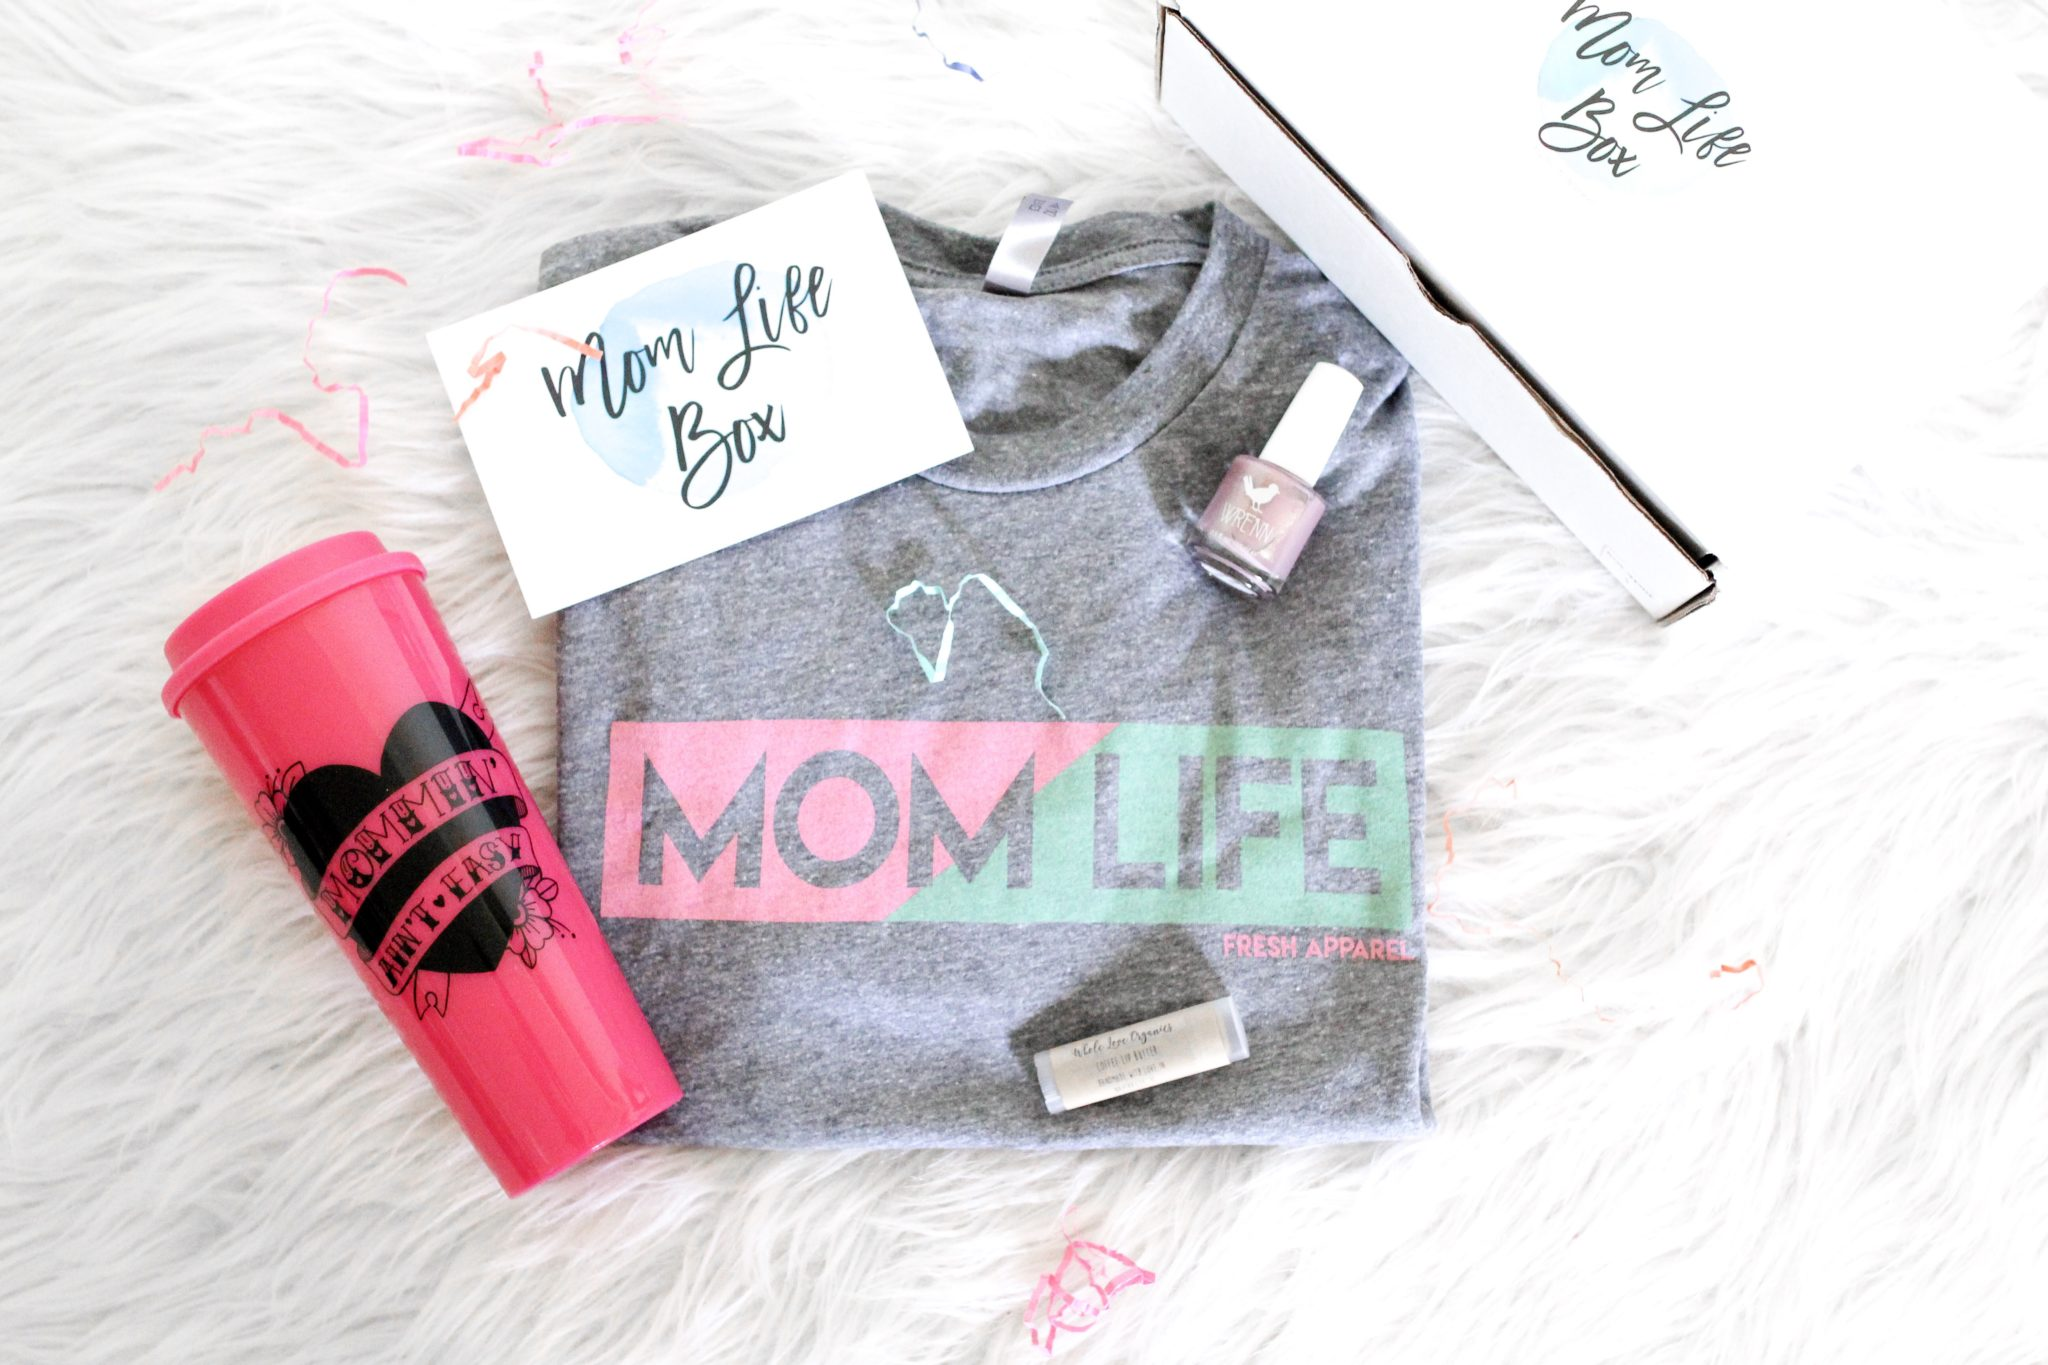 Mom Life Box by Fresh Apparel. $36/month for a box of small shop goodies delivered straight to your doorstep. This box contains one limited/exclusive tee plus 1-3 other small shop goodies hand picked by the owner. Subscription boxes for moms, mom life, mom tees, organic lip balm, 5 free nail polish, Shop Wrenn, Whole Organic Love, Fresh Apparel Tees, Little Hooligans